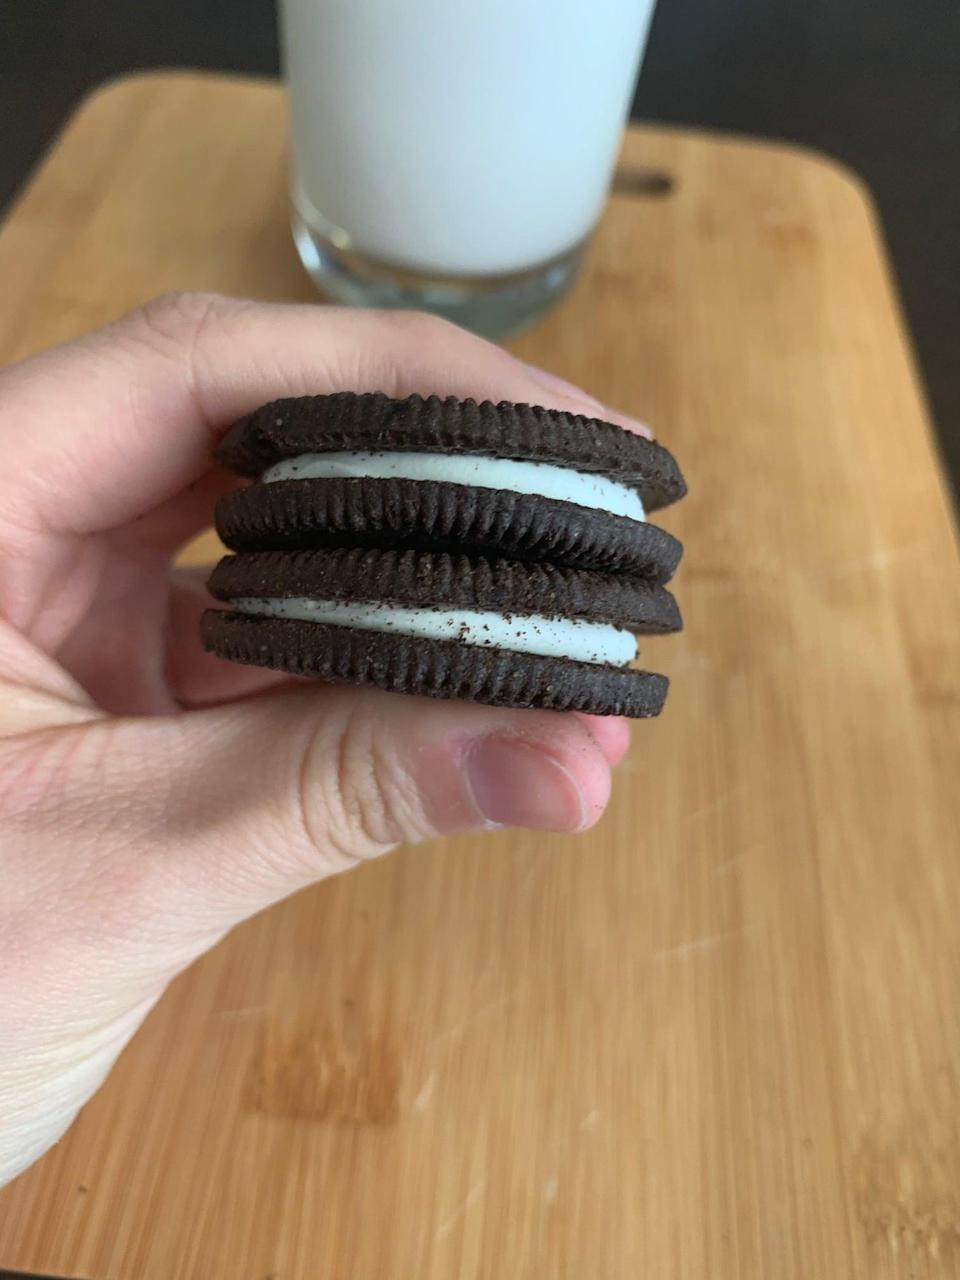 <p>For research purposes, I asked my sister (who does eat gluten) to try the cookies along with me. As someone who would put Oreos on the top of her list of favorite snacks, she agreed that the gluten-free cookies solidly pass for the real thing.</p>